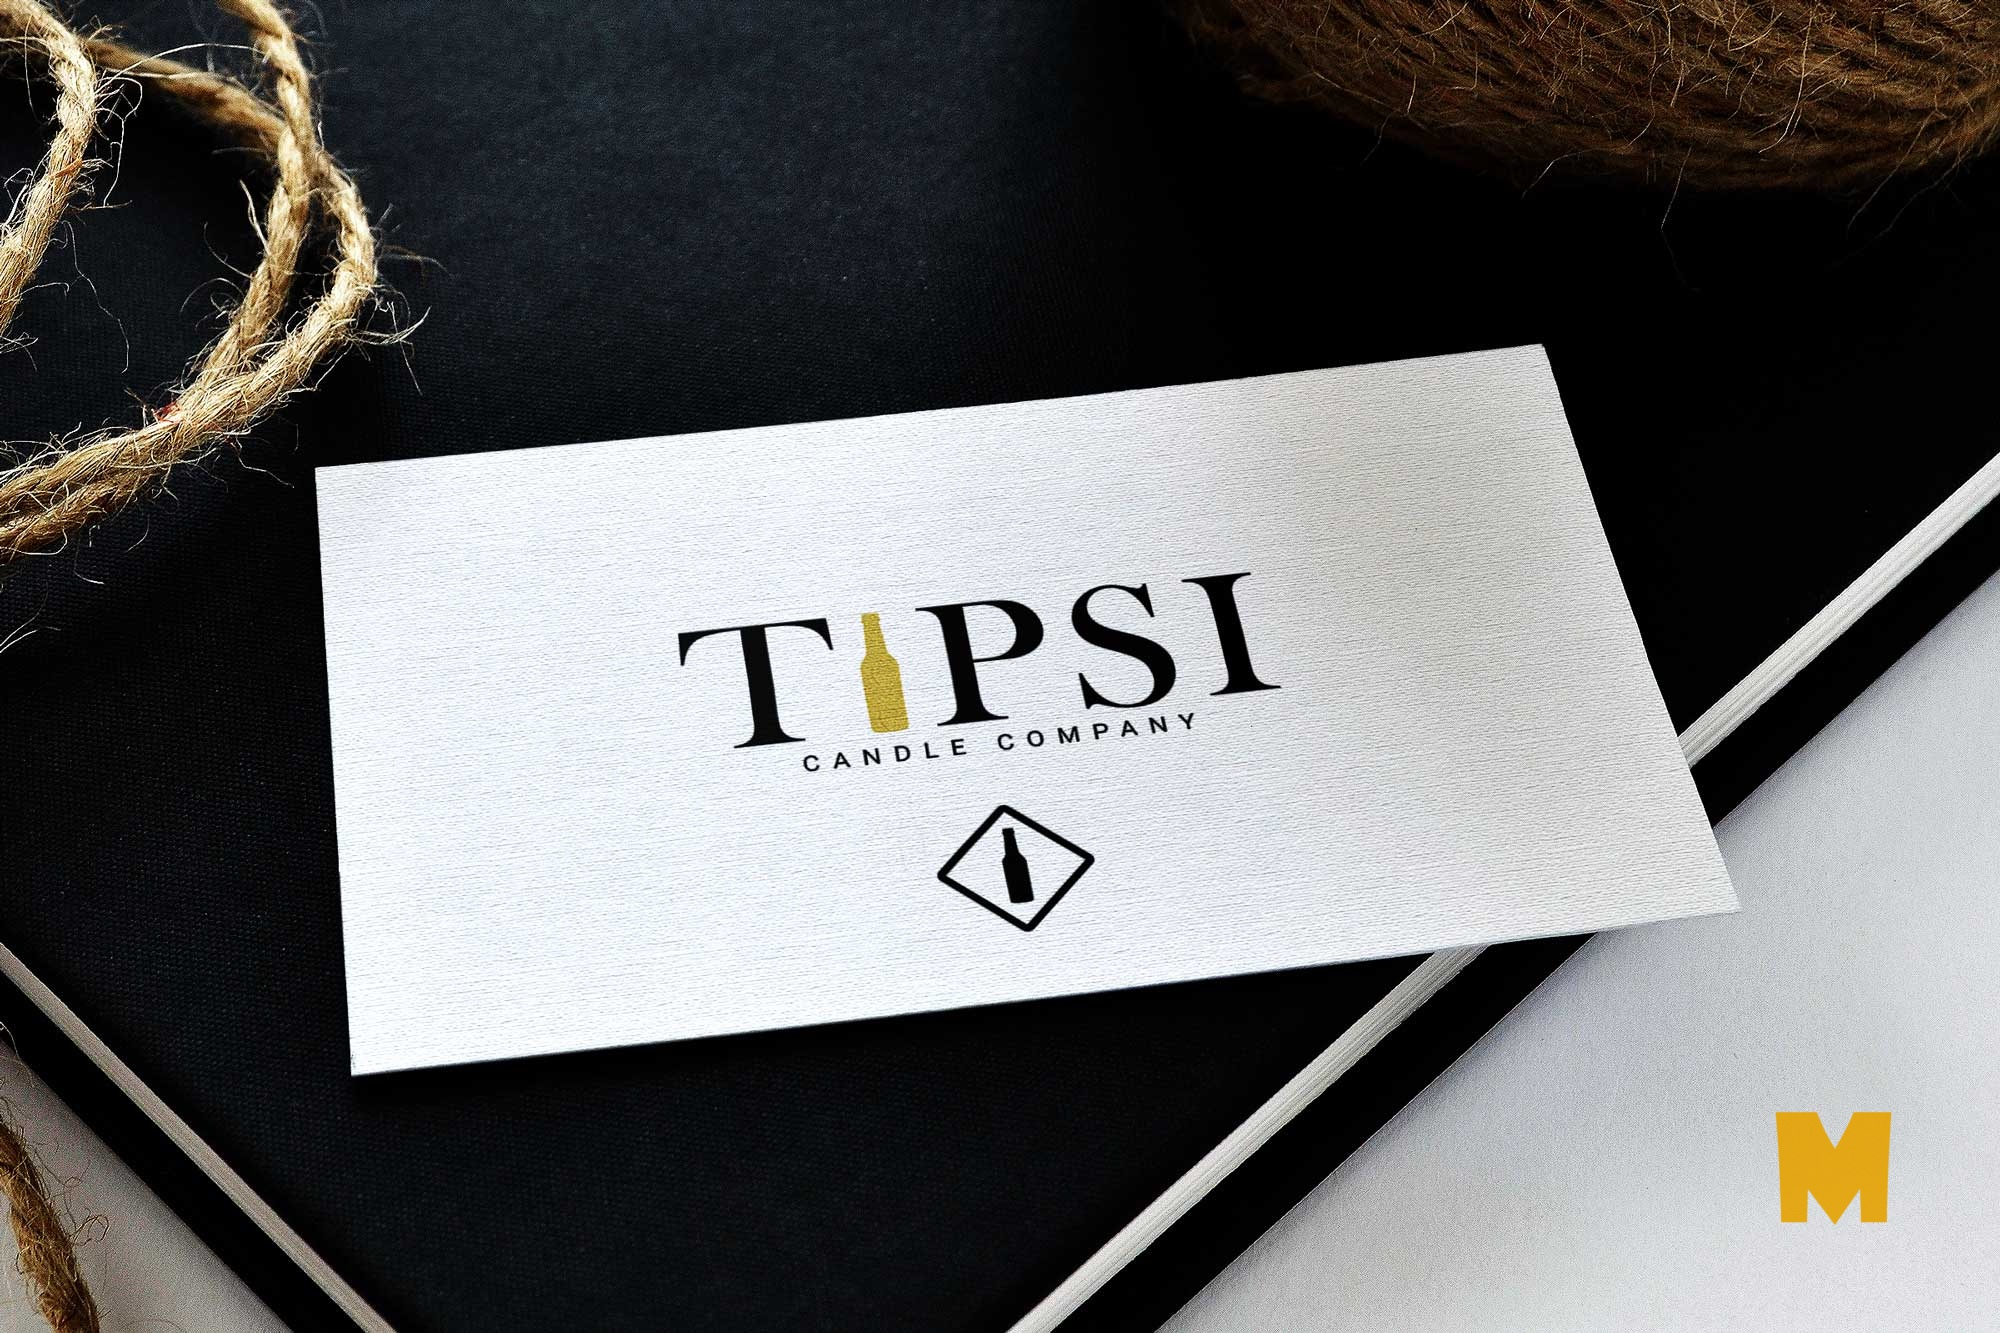 Tipsi Business Card Mockup 2019